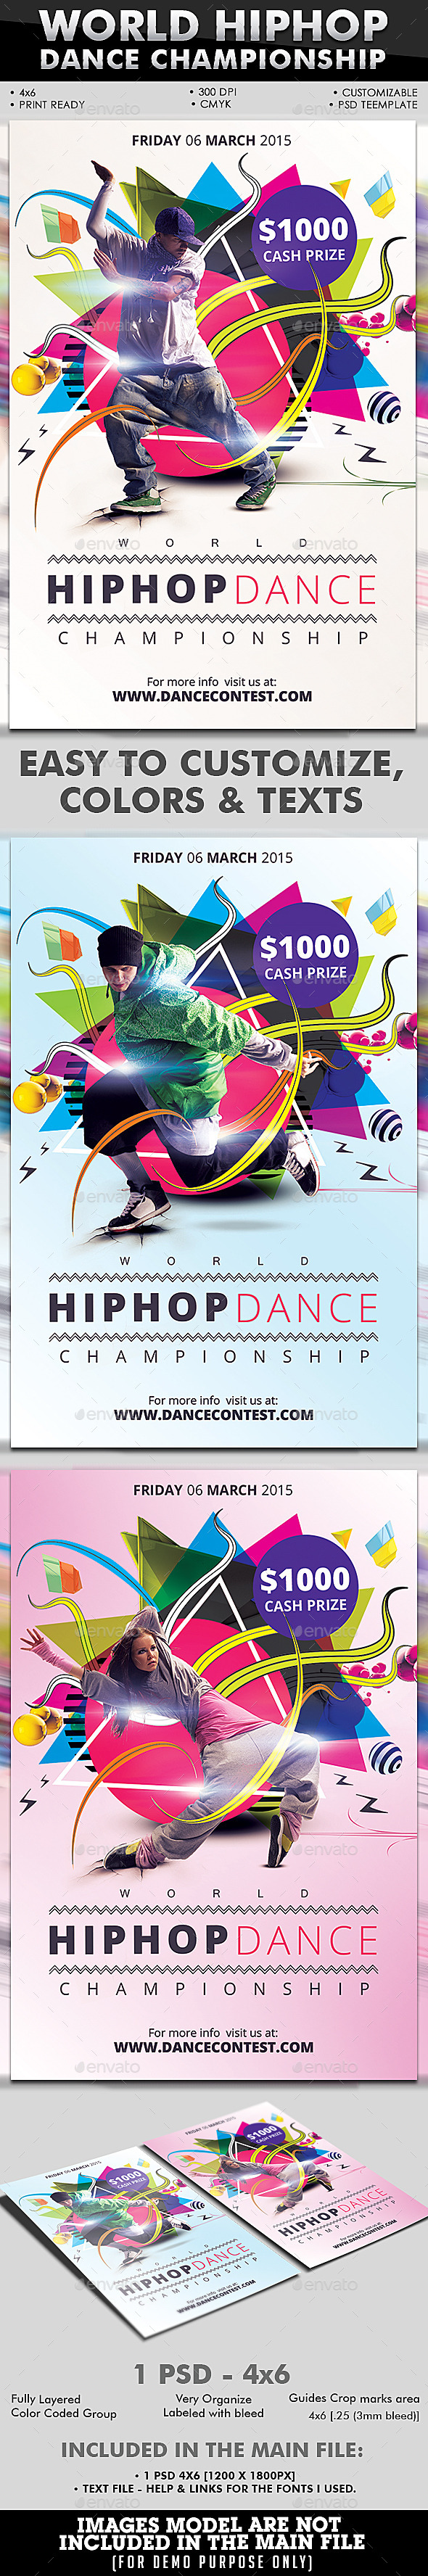 GraphicRiver World Hiphop Dance Championship 9989859